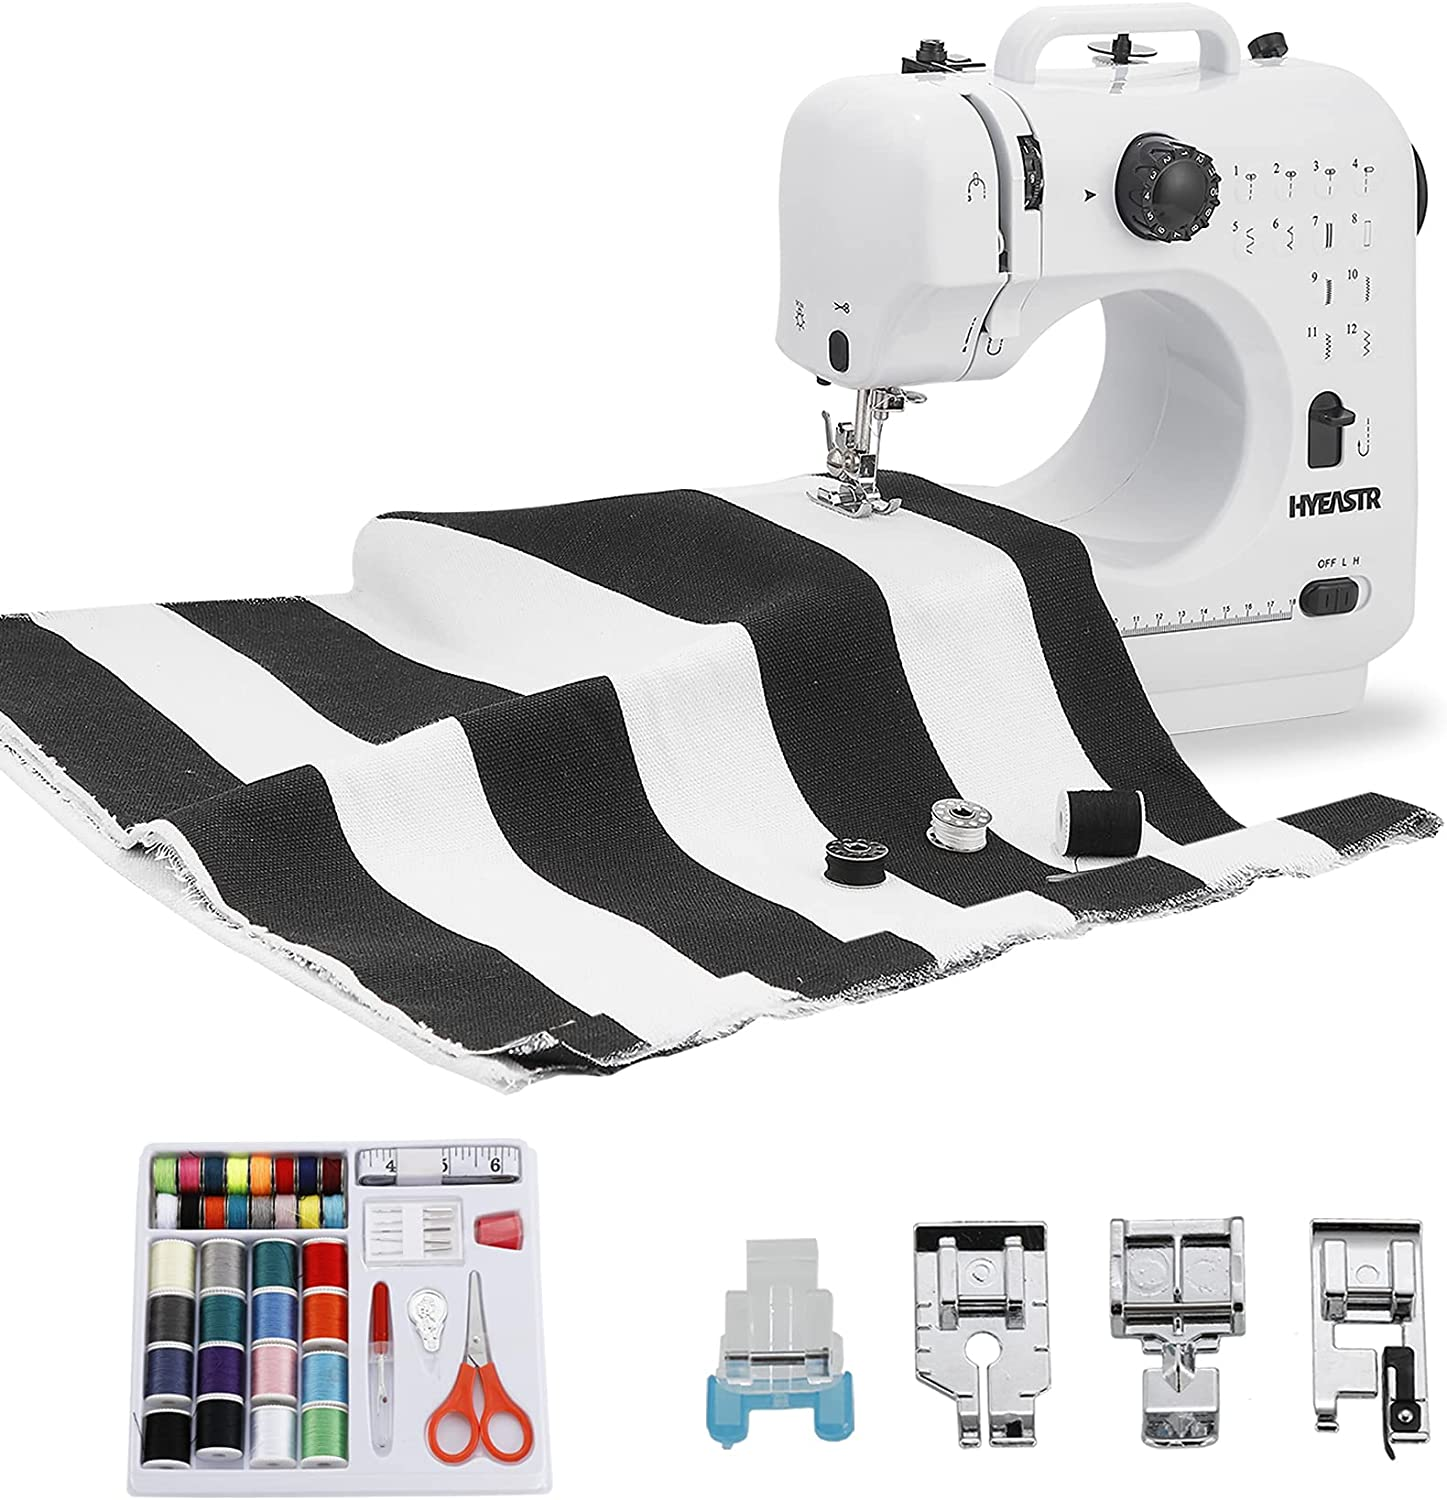 HYEASTR Sewing Machine Electric Household Sewing Machines